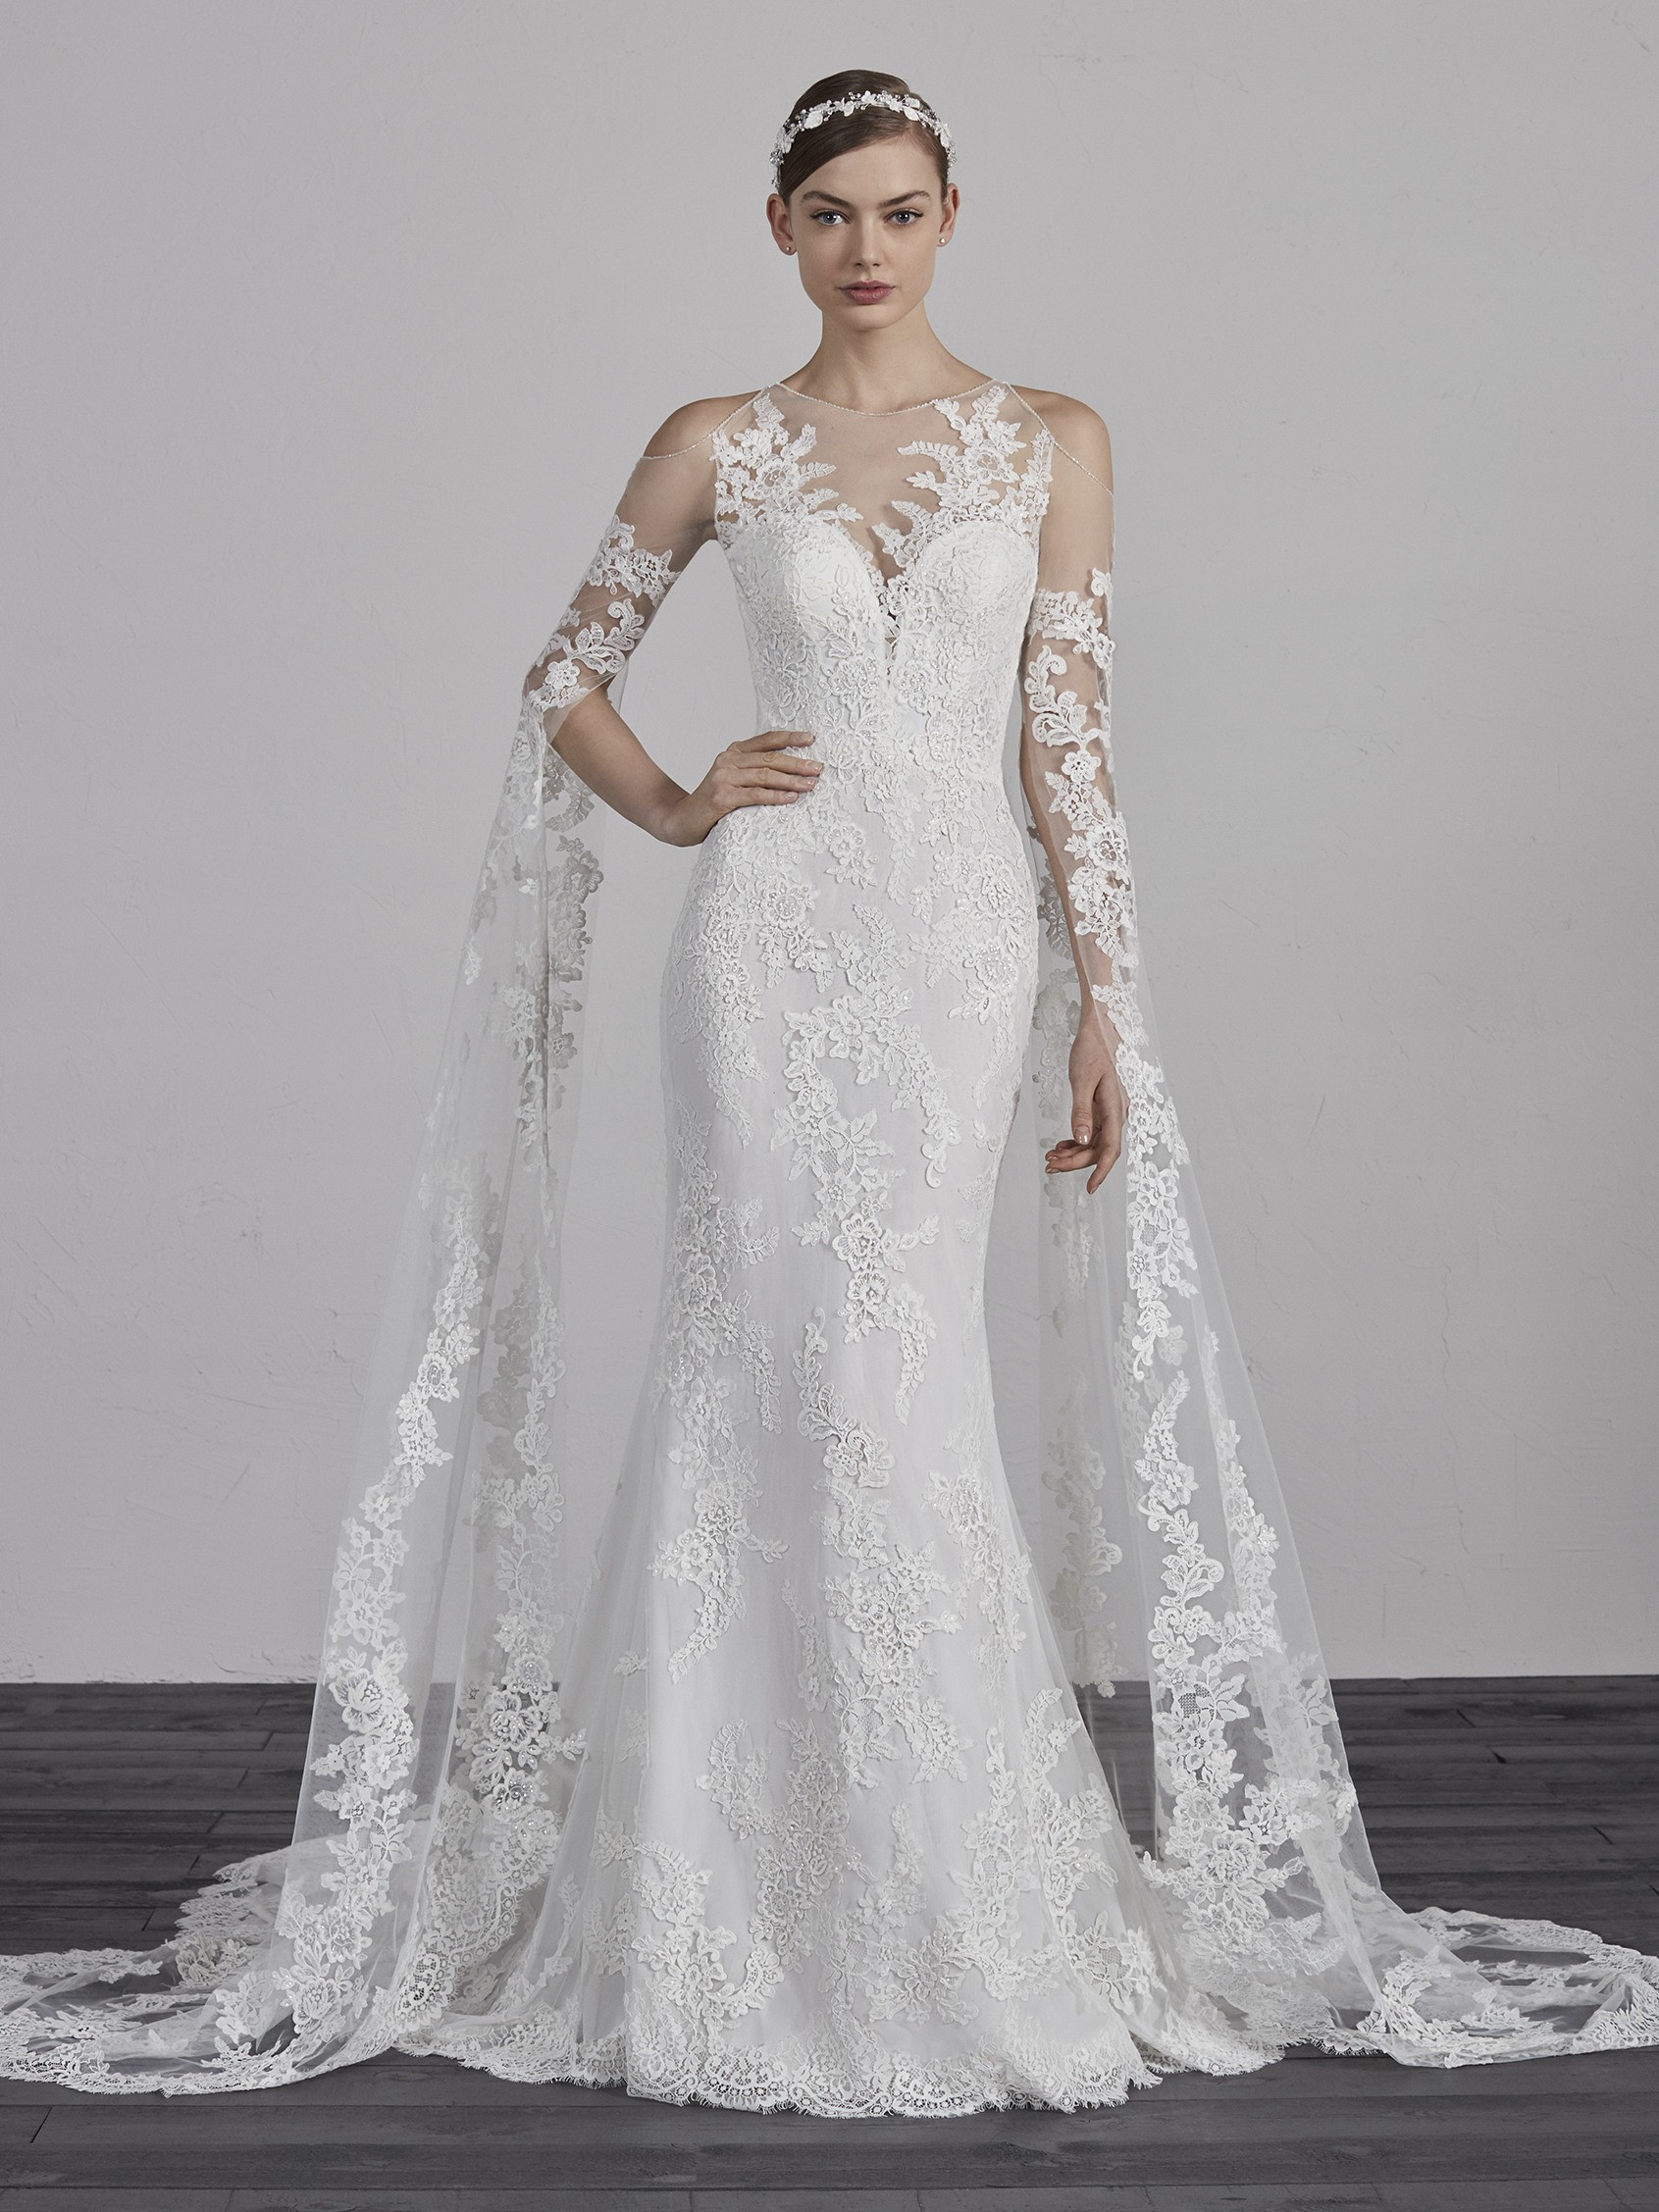 Lace Illusion Sweetheart Neck Cold Shoulder Floor Length Sleeves     Lace Illusion Sweetheart Neck Cold Shoulder Floor Length Sleeves Mermaid Wedding  Dress   Kleinfeld Bridal